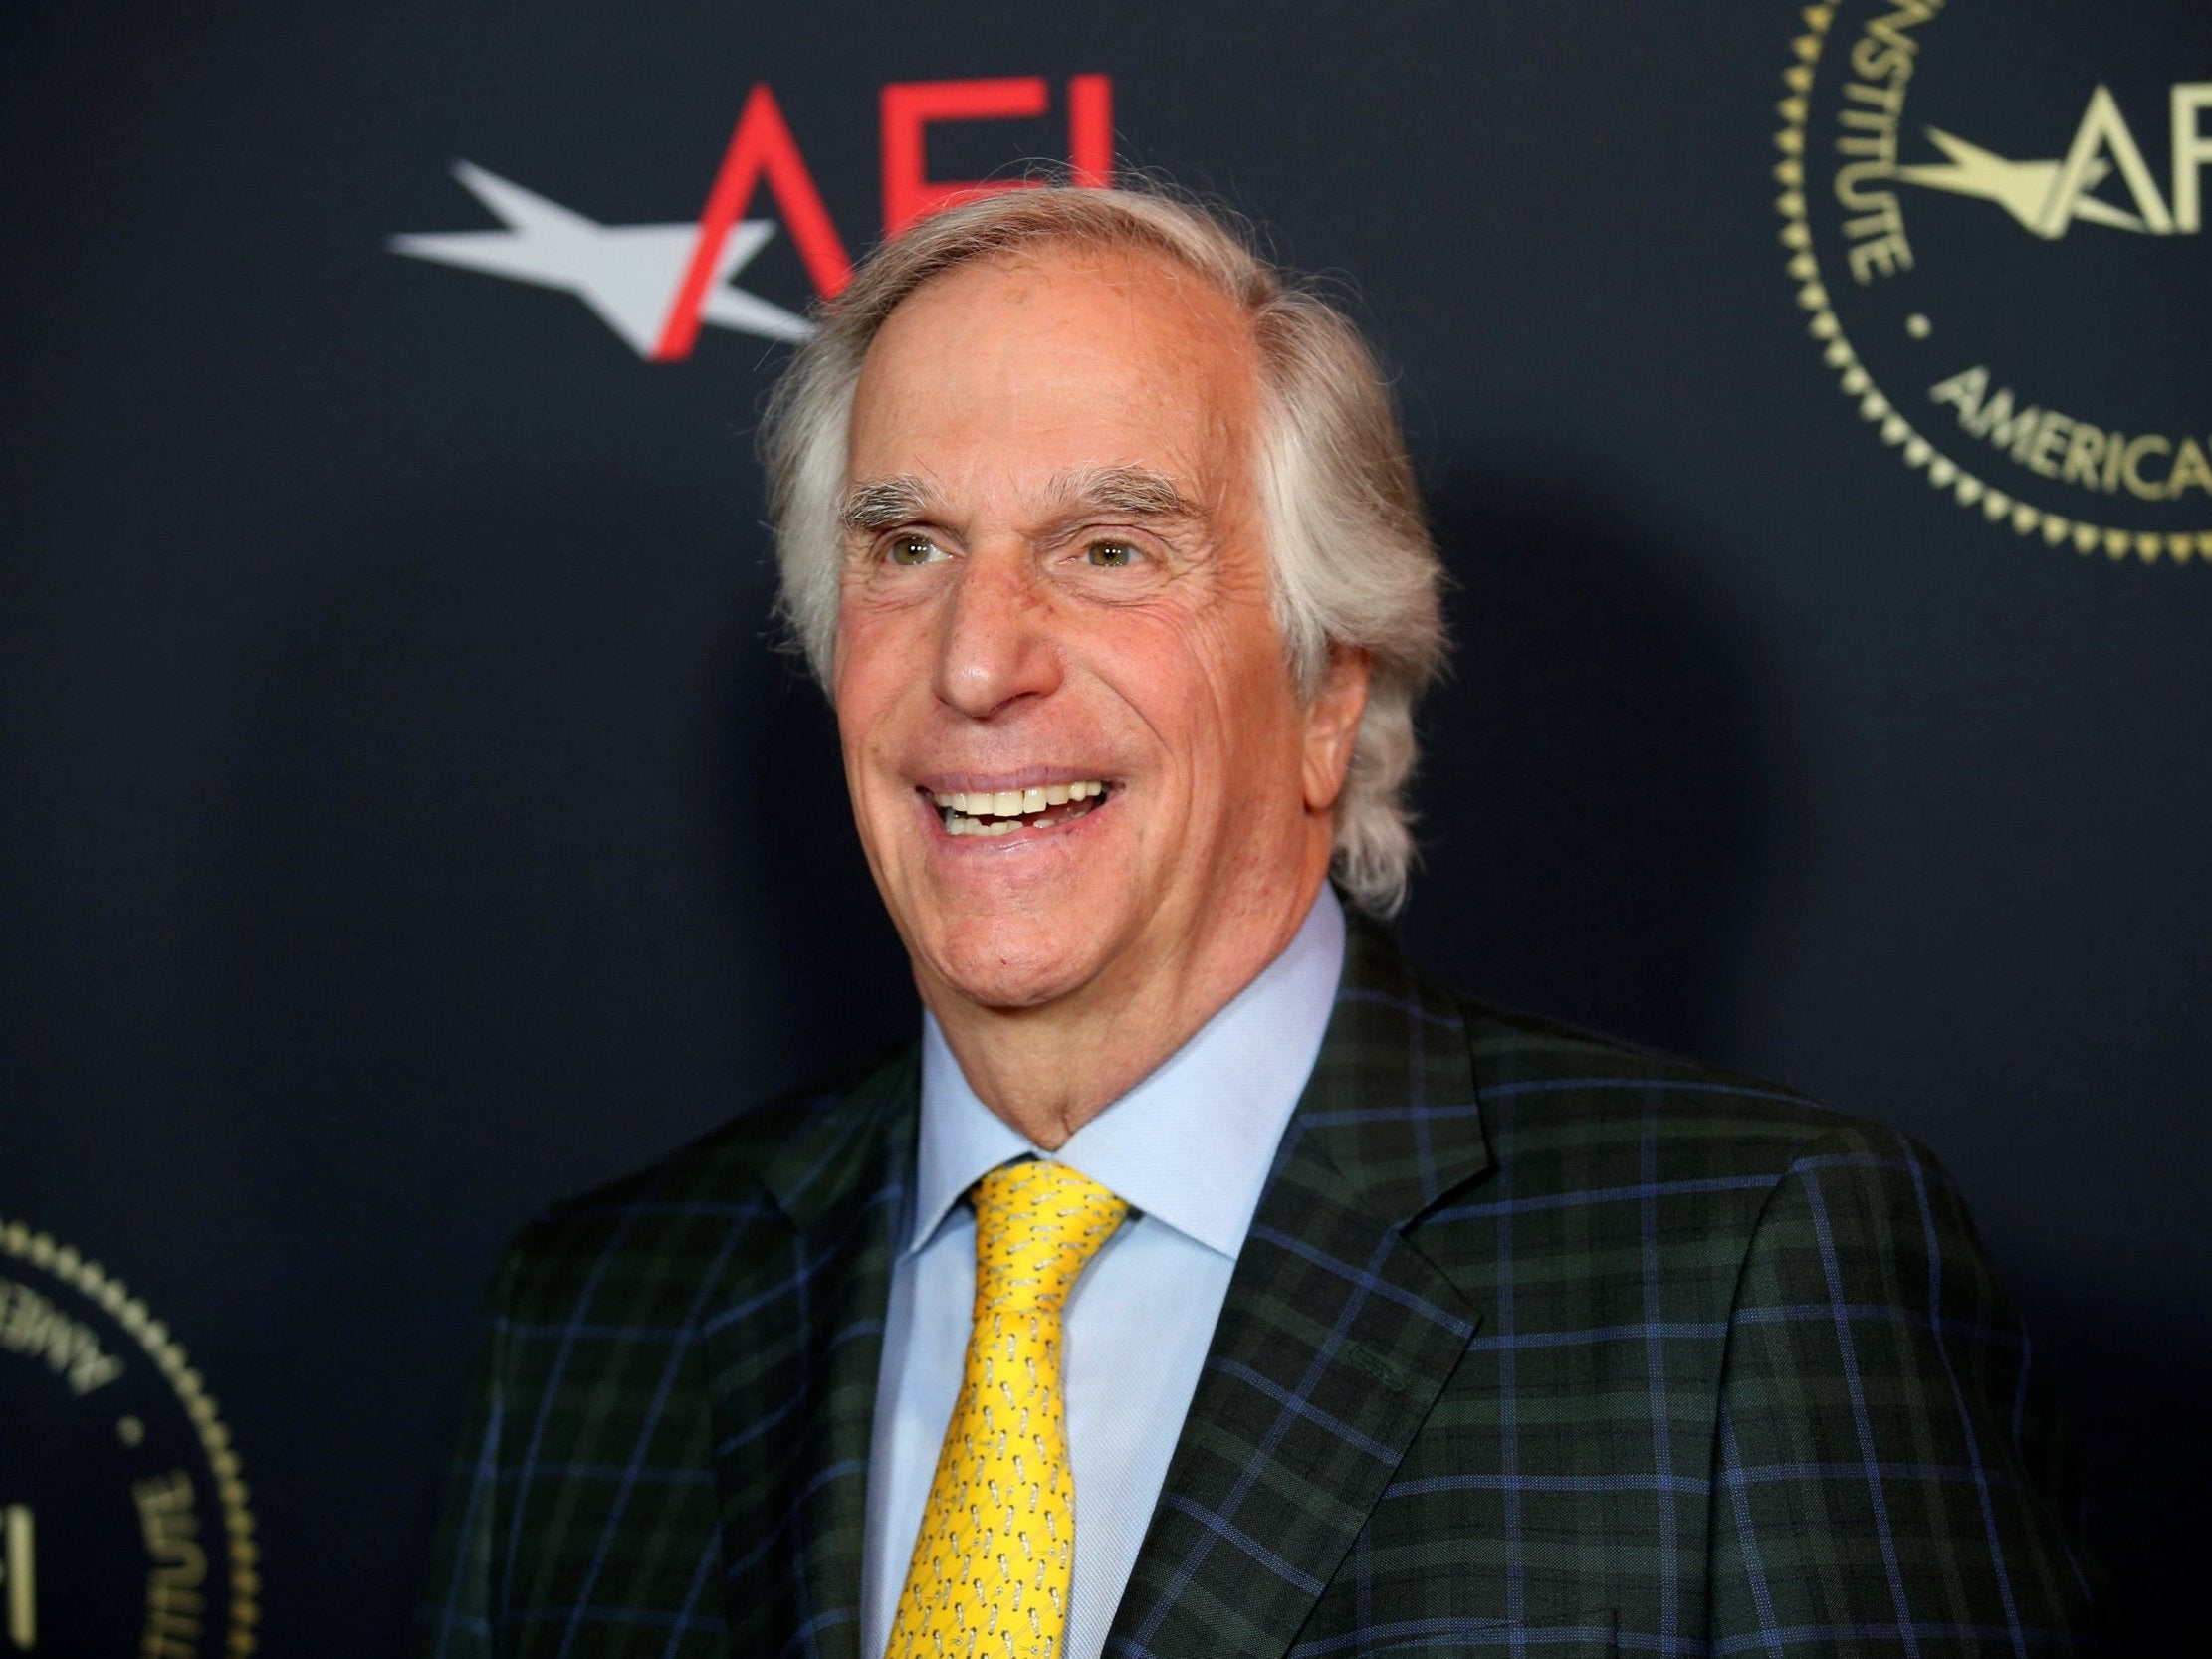 The French Dispatch: Henry Winkler joins cast of new Wes Anderson film starring Bill Murray and Saoirse Ronan